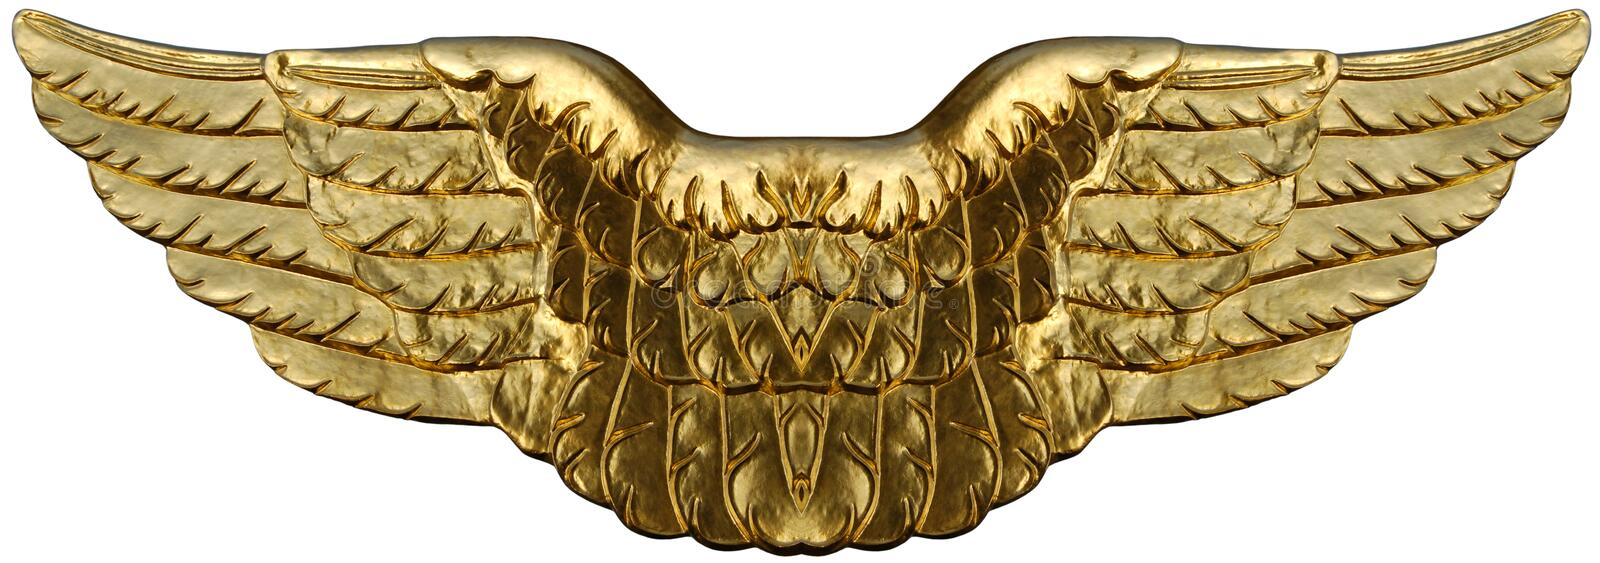 Ailes d'or symboliques illustration stock